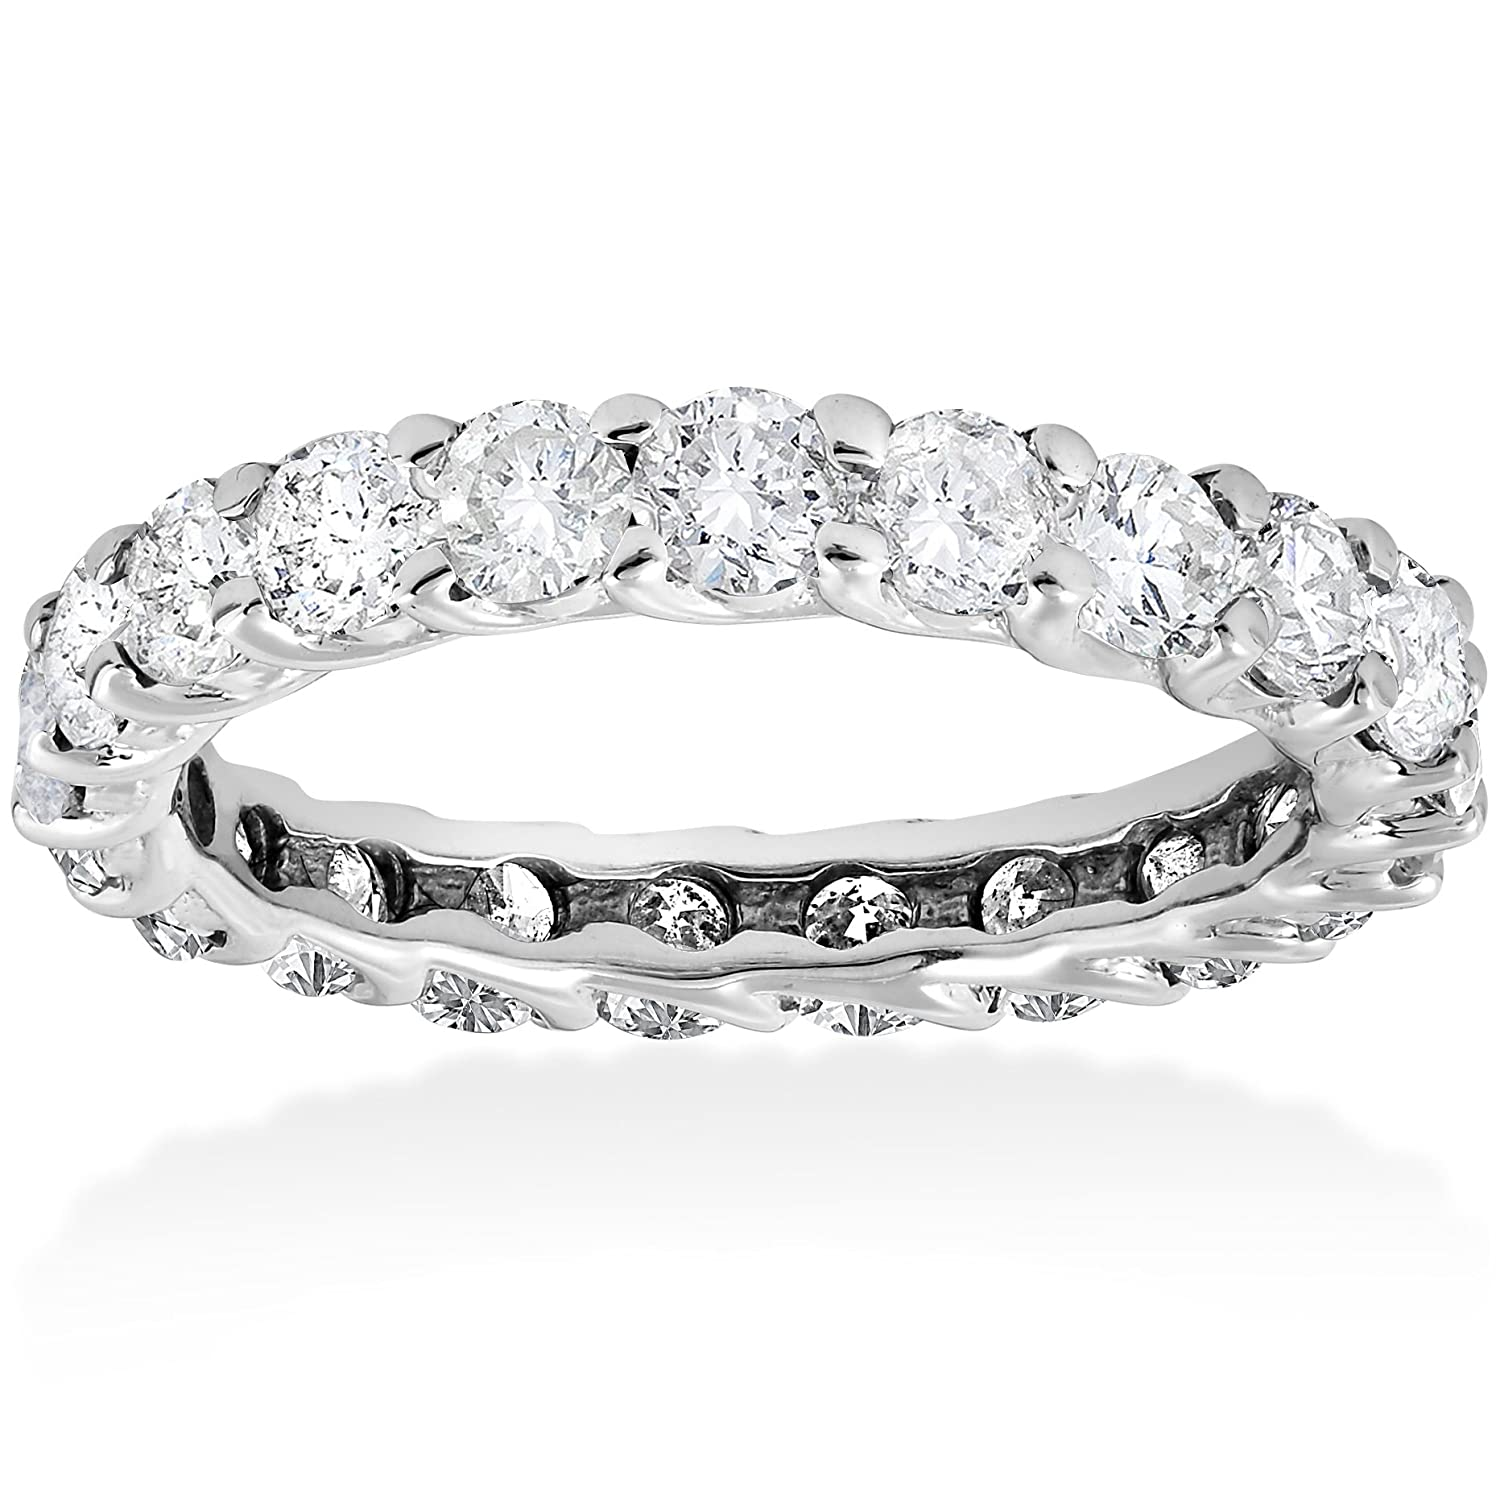 diamond weissen in jewellery kt annaij eternity ring white gold j diamanten with diamonds mit rosegold ct i rings com en queen anna a rose